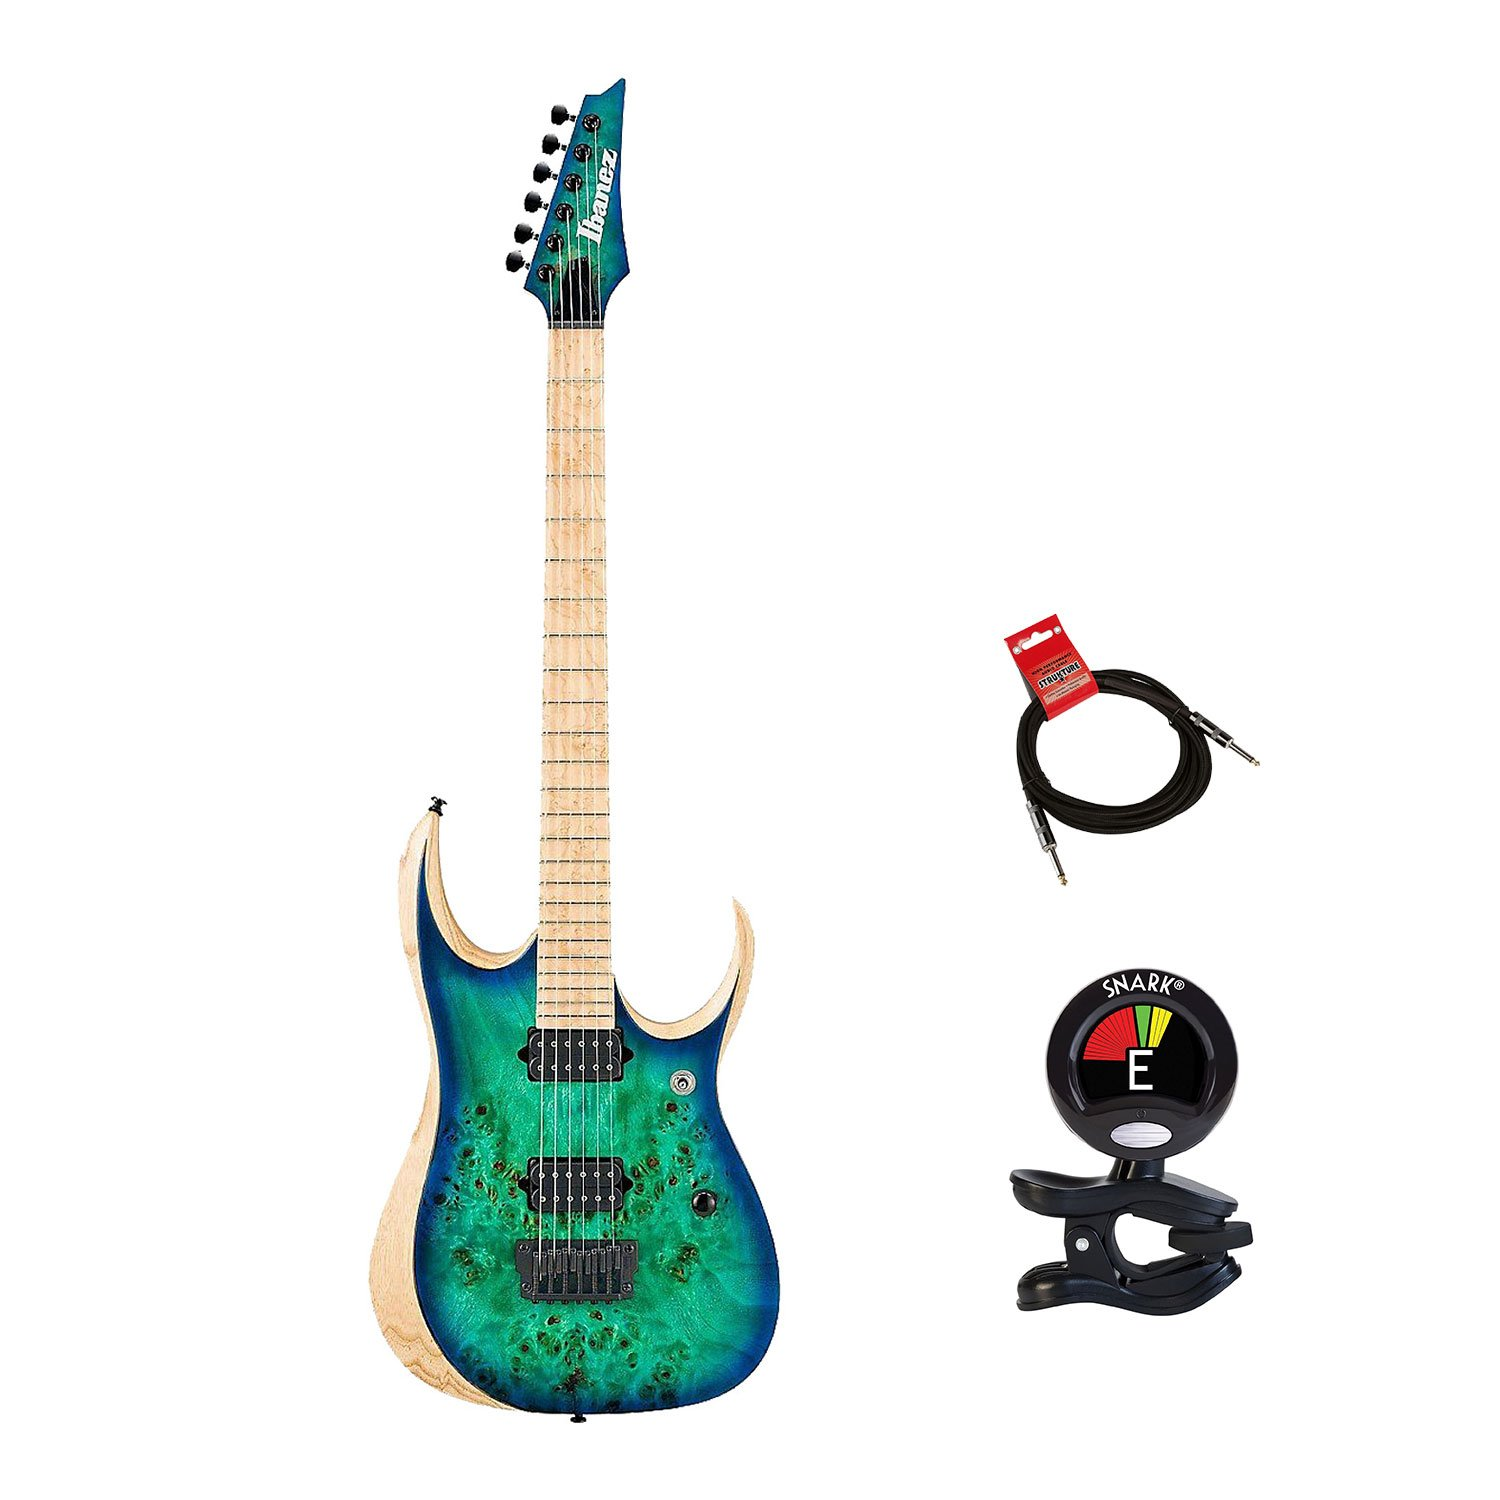 Cheap Ibanez RGDIX6MPB-SBB Iron Label RGD Series Electric Guitar Bundle in Surreal Blue Burst With Guitas Clip On Tuner and Instrument Cable - Guitars Package Black Friday & Cyber Monday 2019